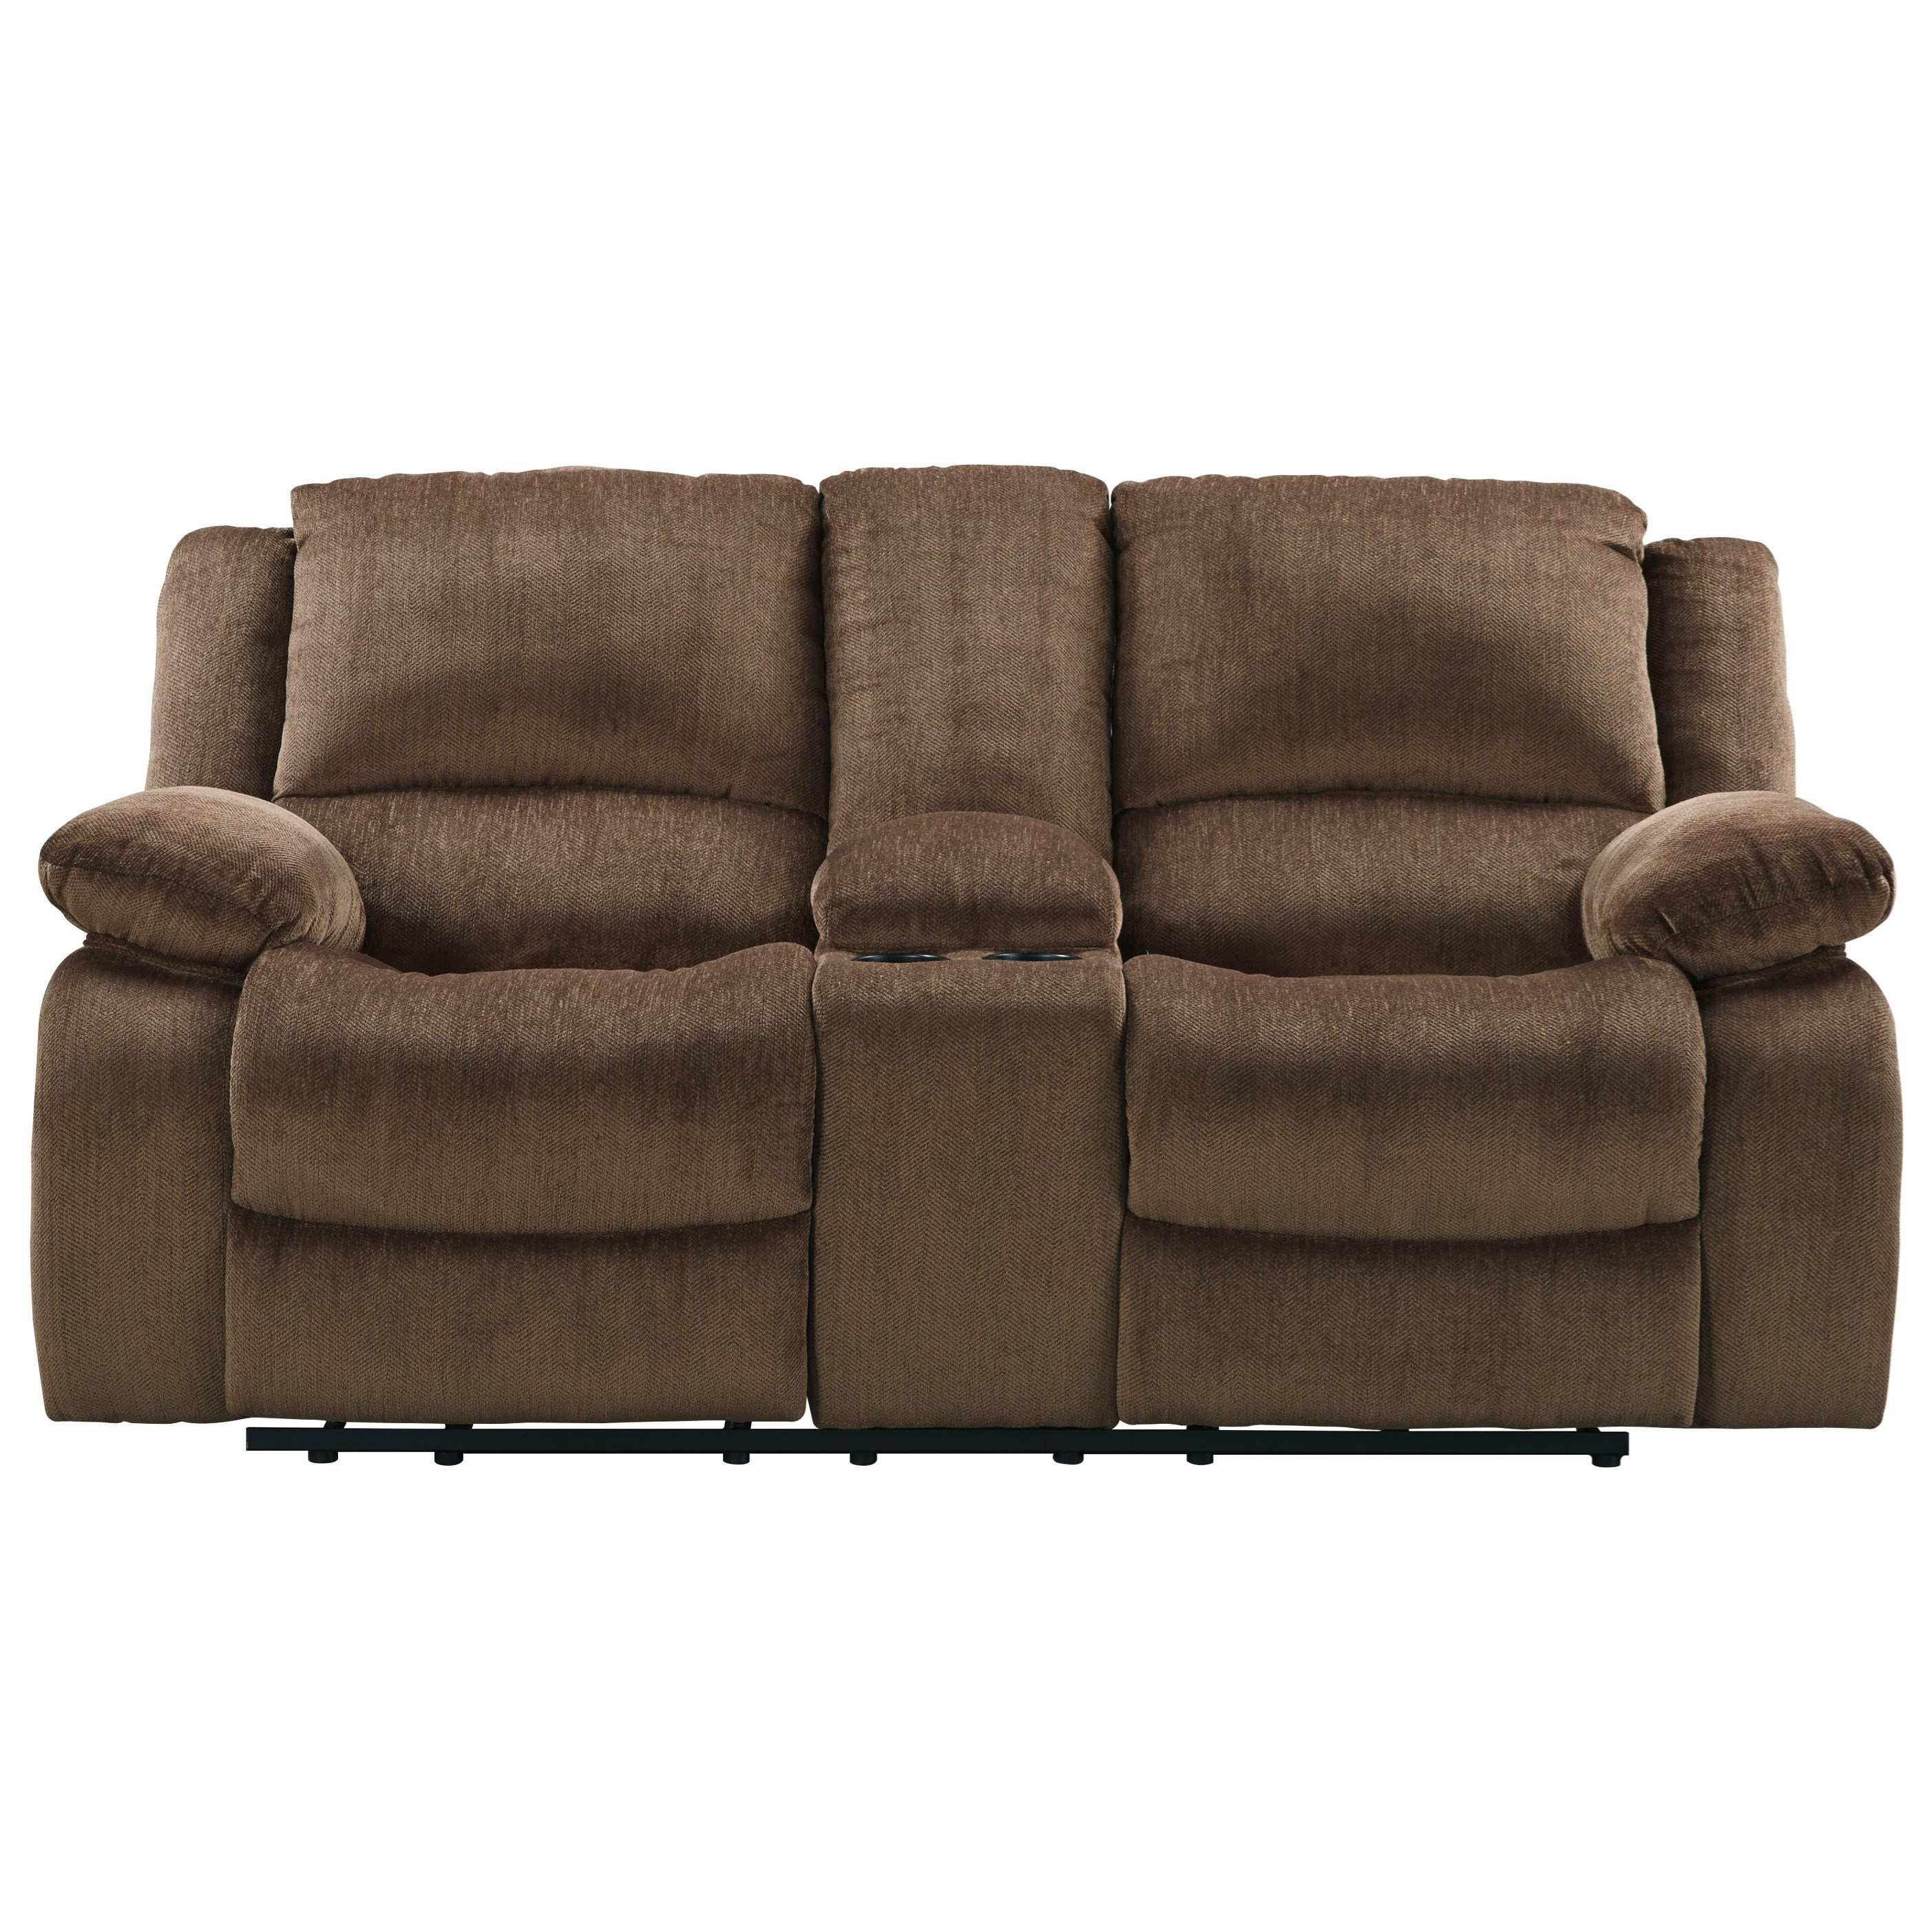 Signature Design by Ashley Kellerhause Double Reclining Loveseat w/ Console - Item Number 7570394  sc 1 st  Household Furniture & Signature Design by Ashley Kellerhause Double Reclining Loveseat w ... islam-shia.org